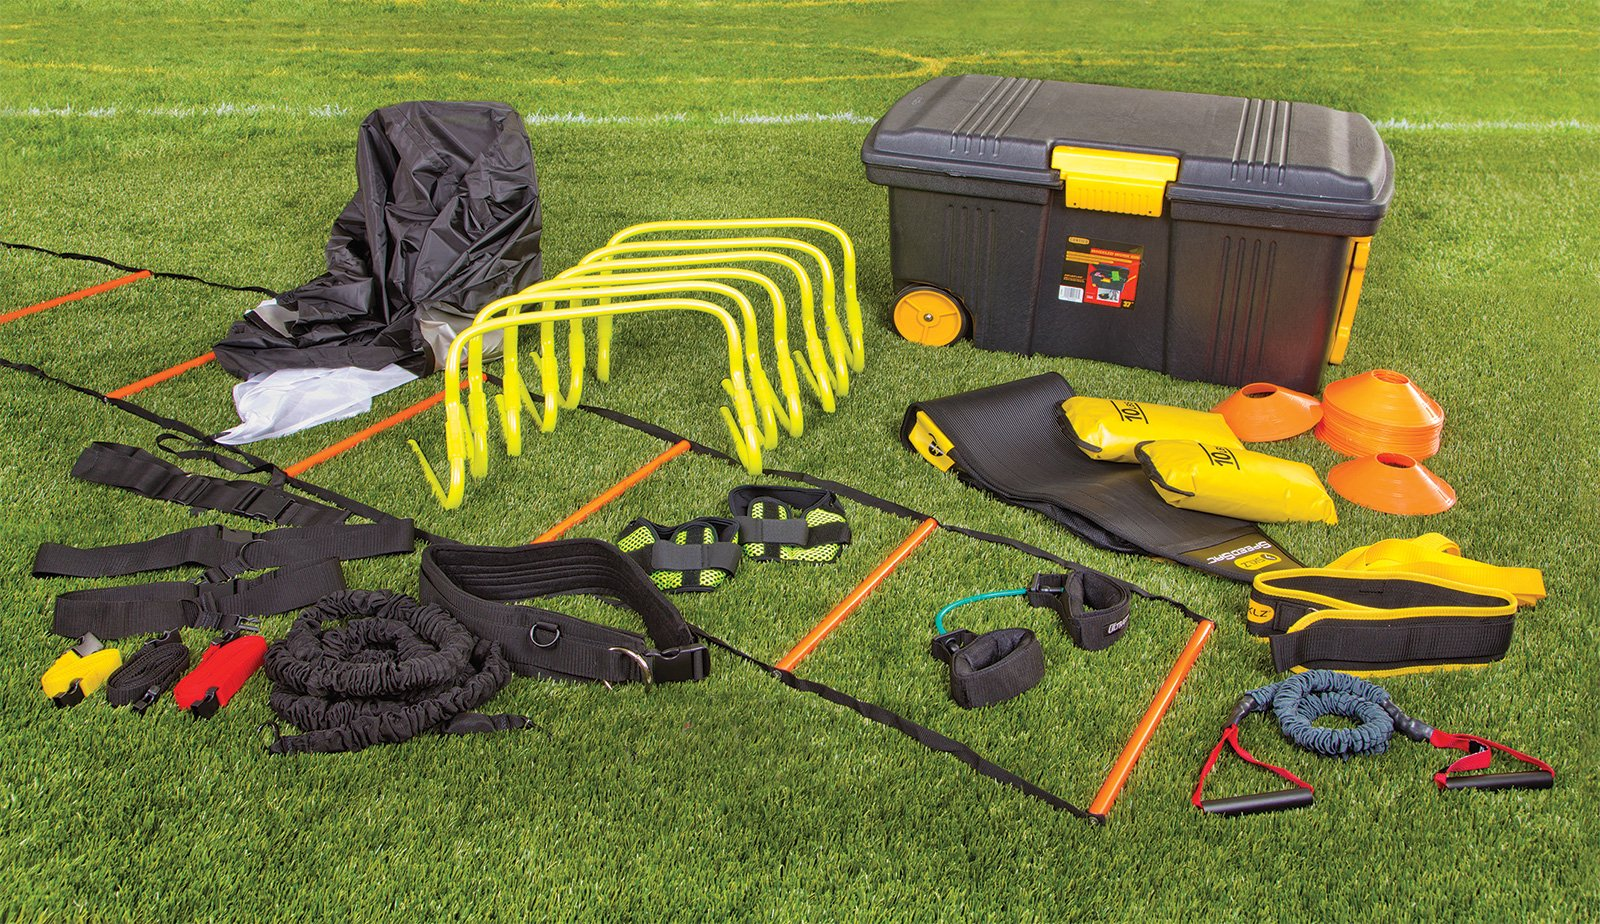 Equipment for SAQ sports training with storage case